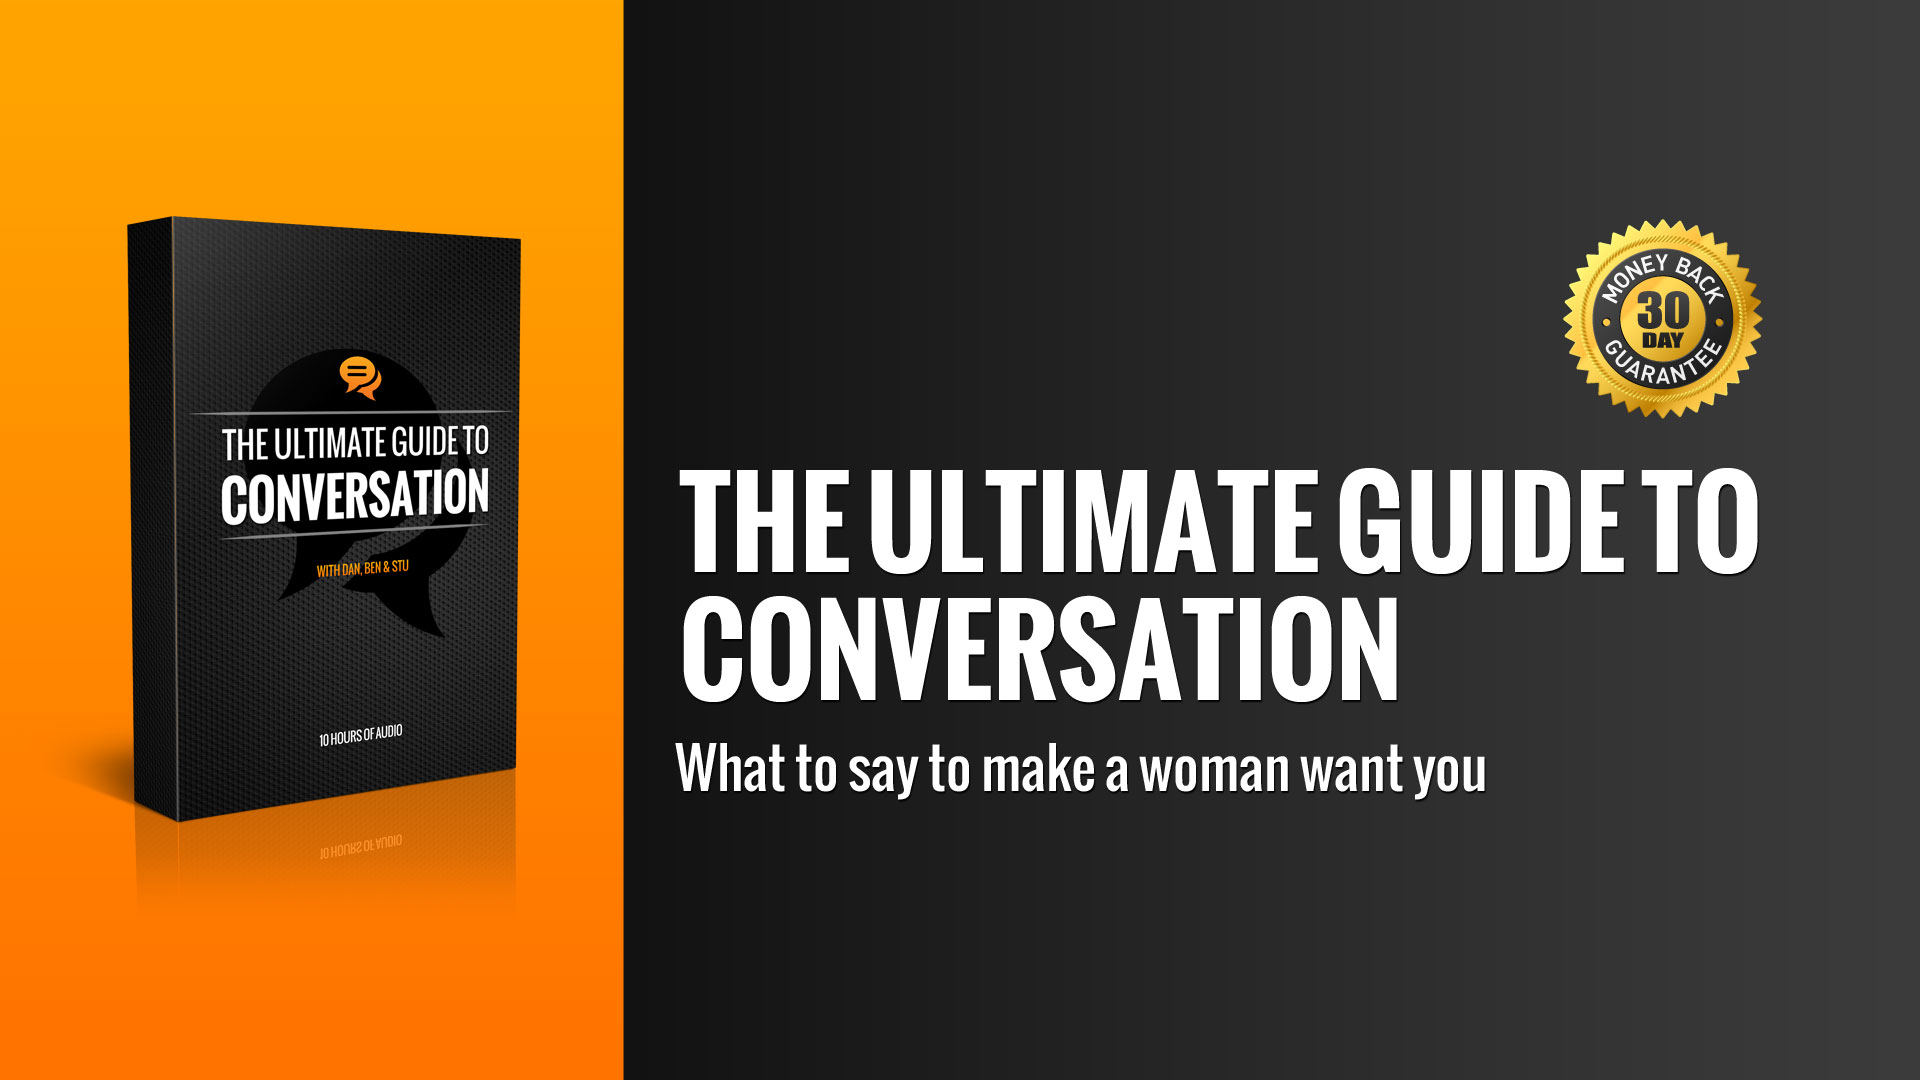 The Ultimate Guide to Conversation